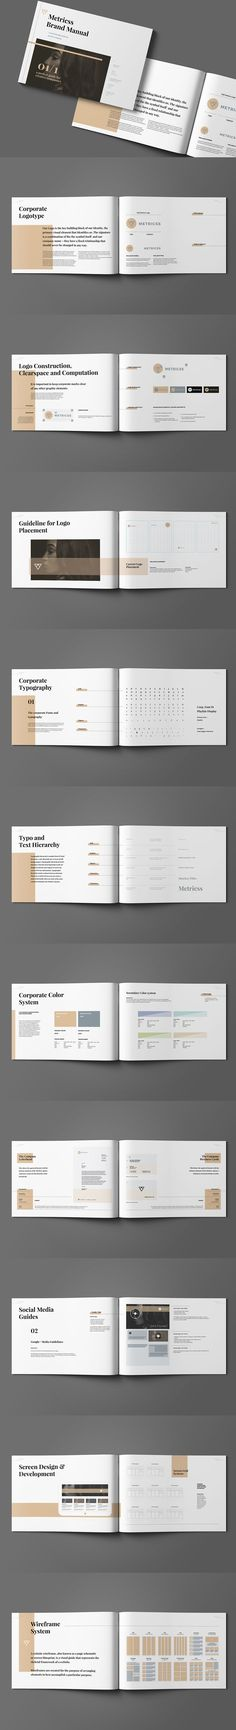 Brand Manual Template More Brand manual ideas - it manual template